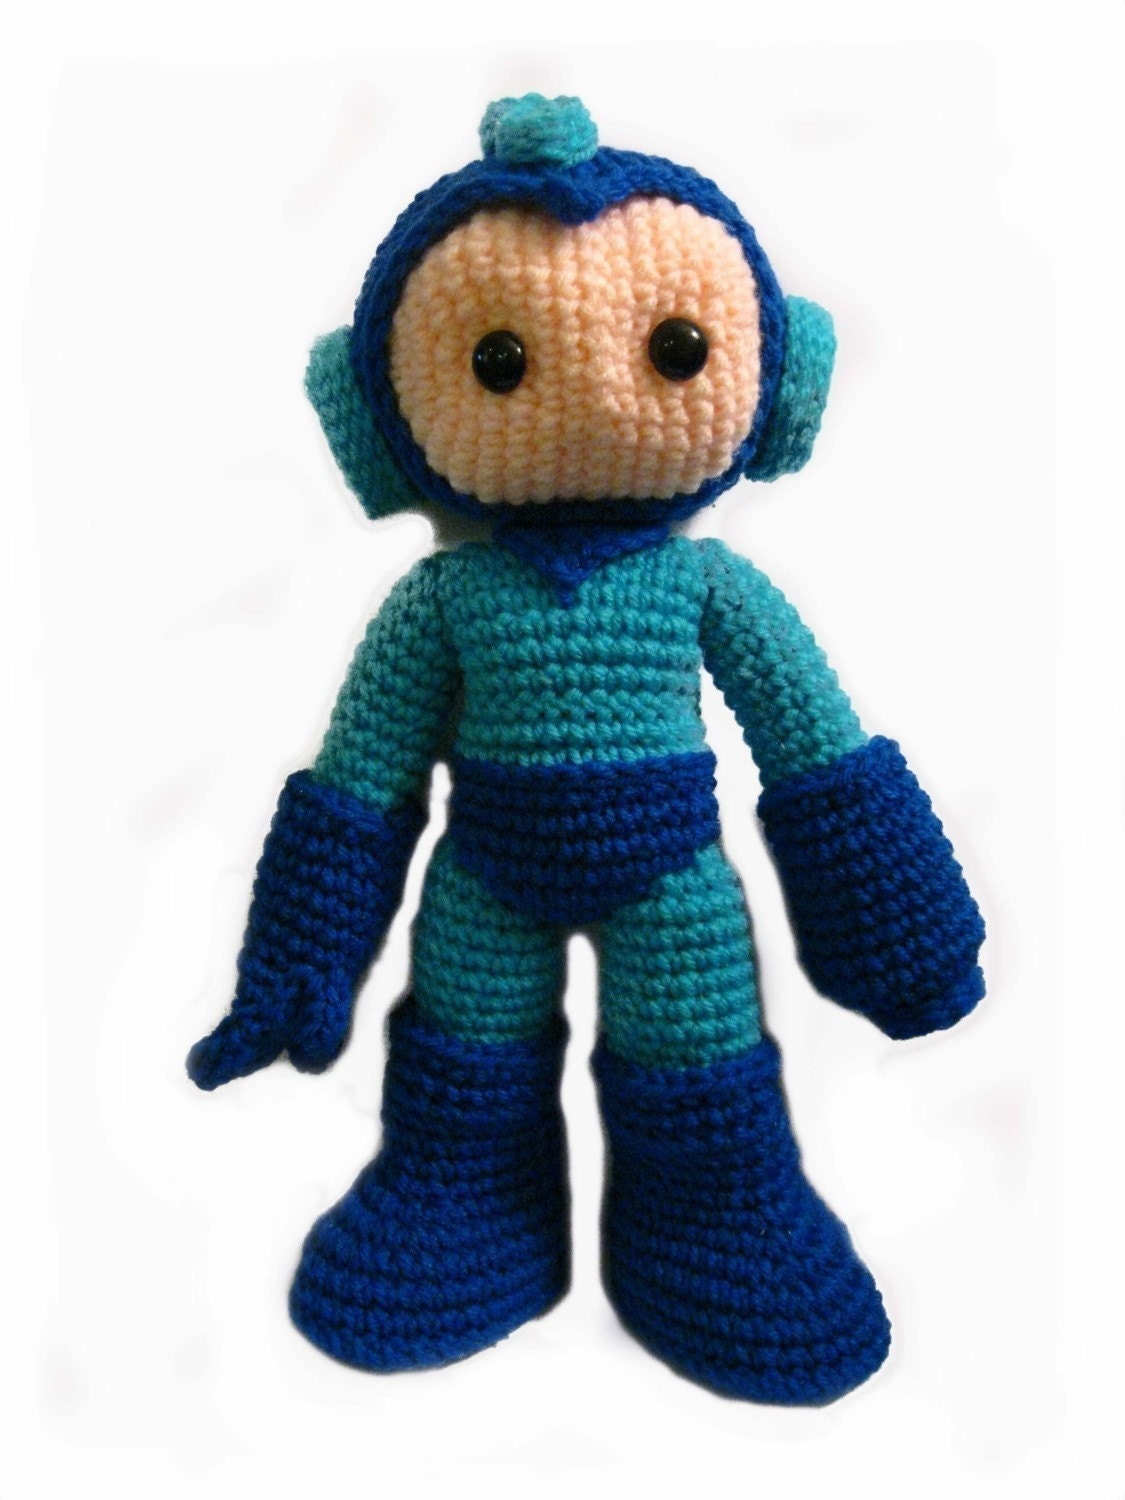 il 170x135.193015267 Etsy Crochet Treasury: Video Games!